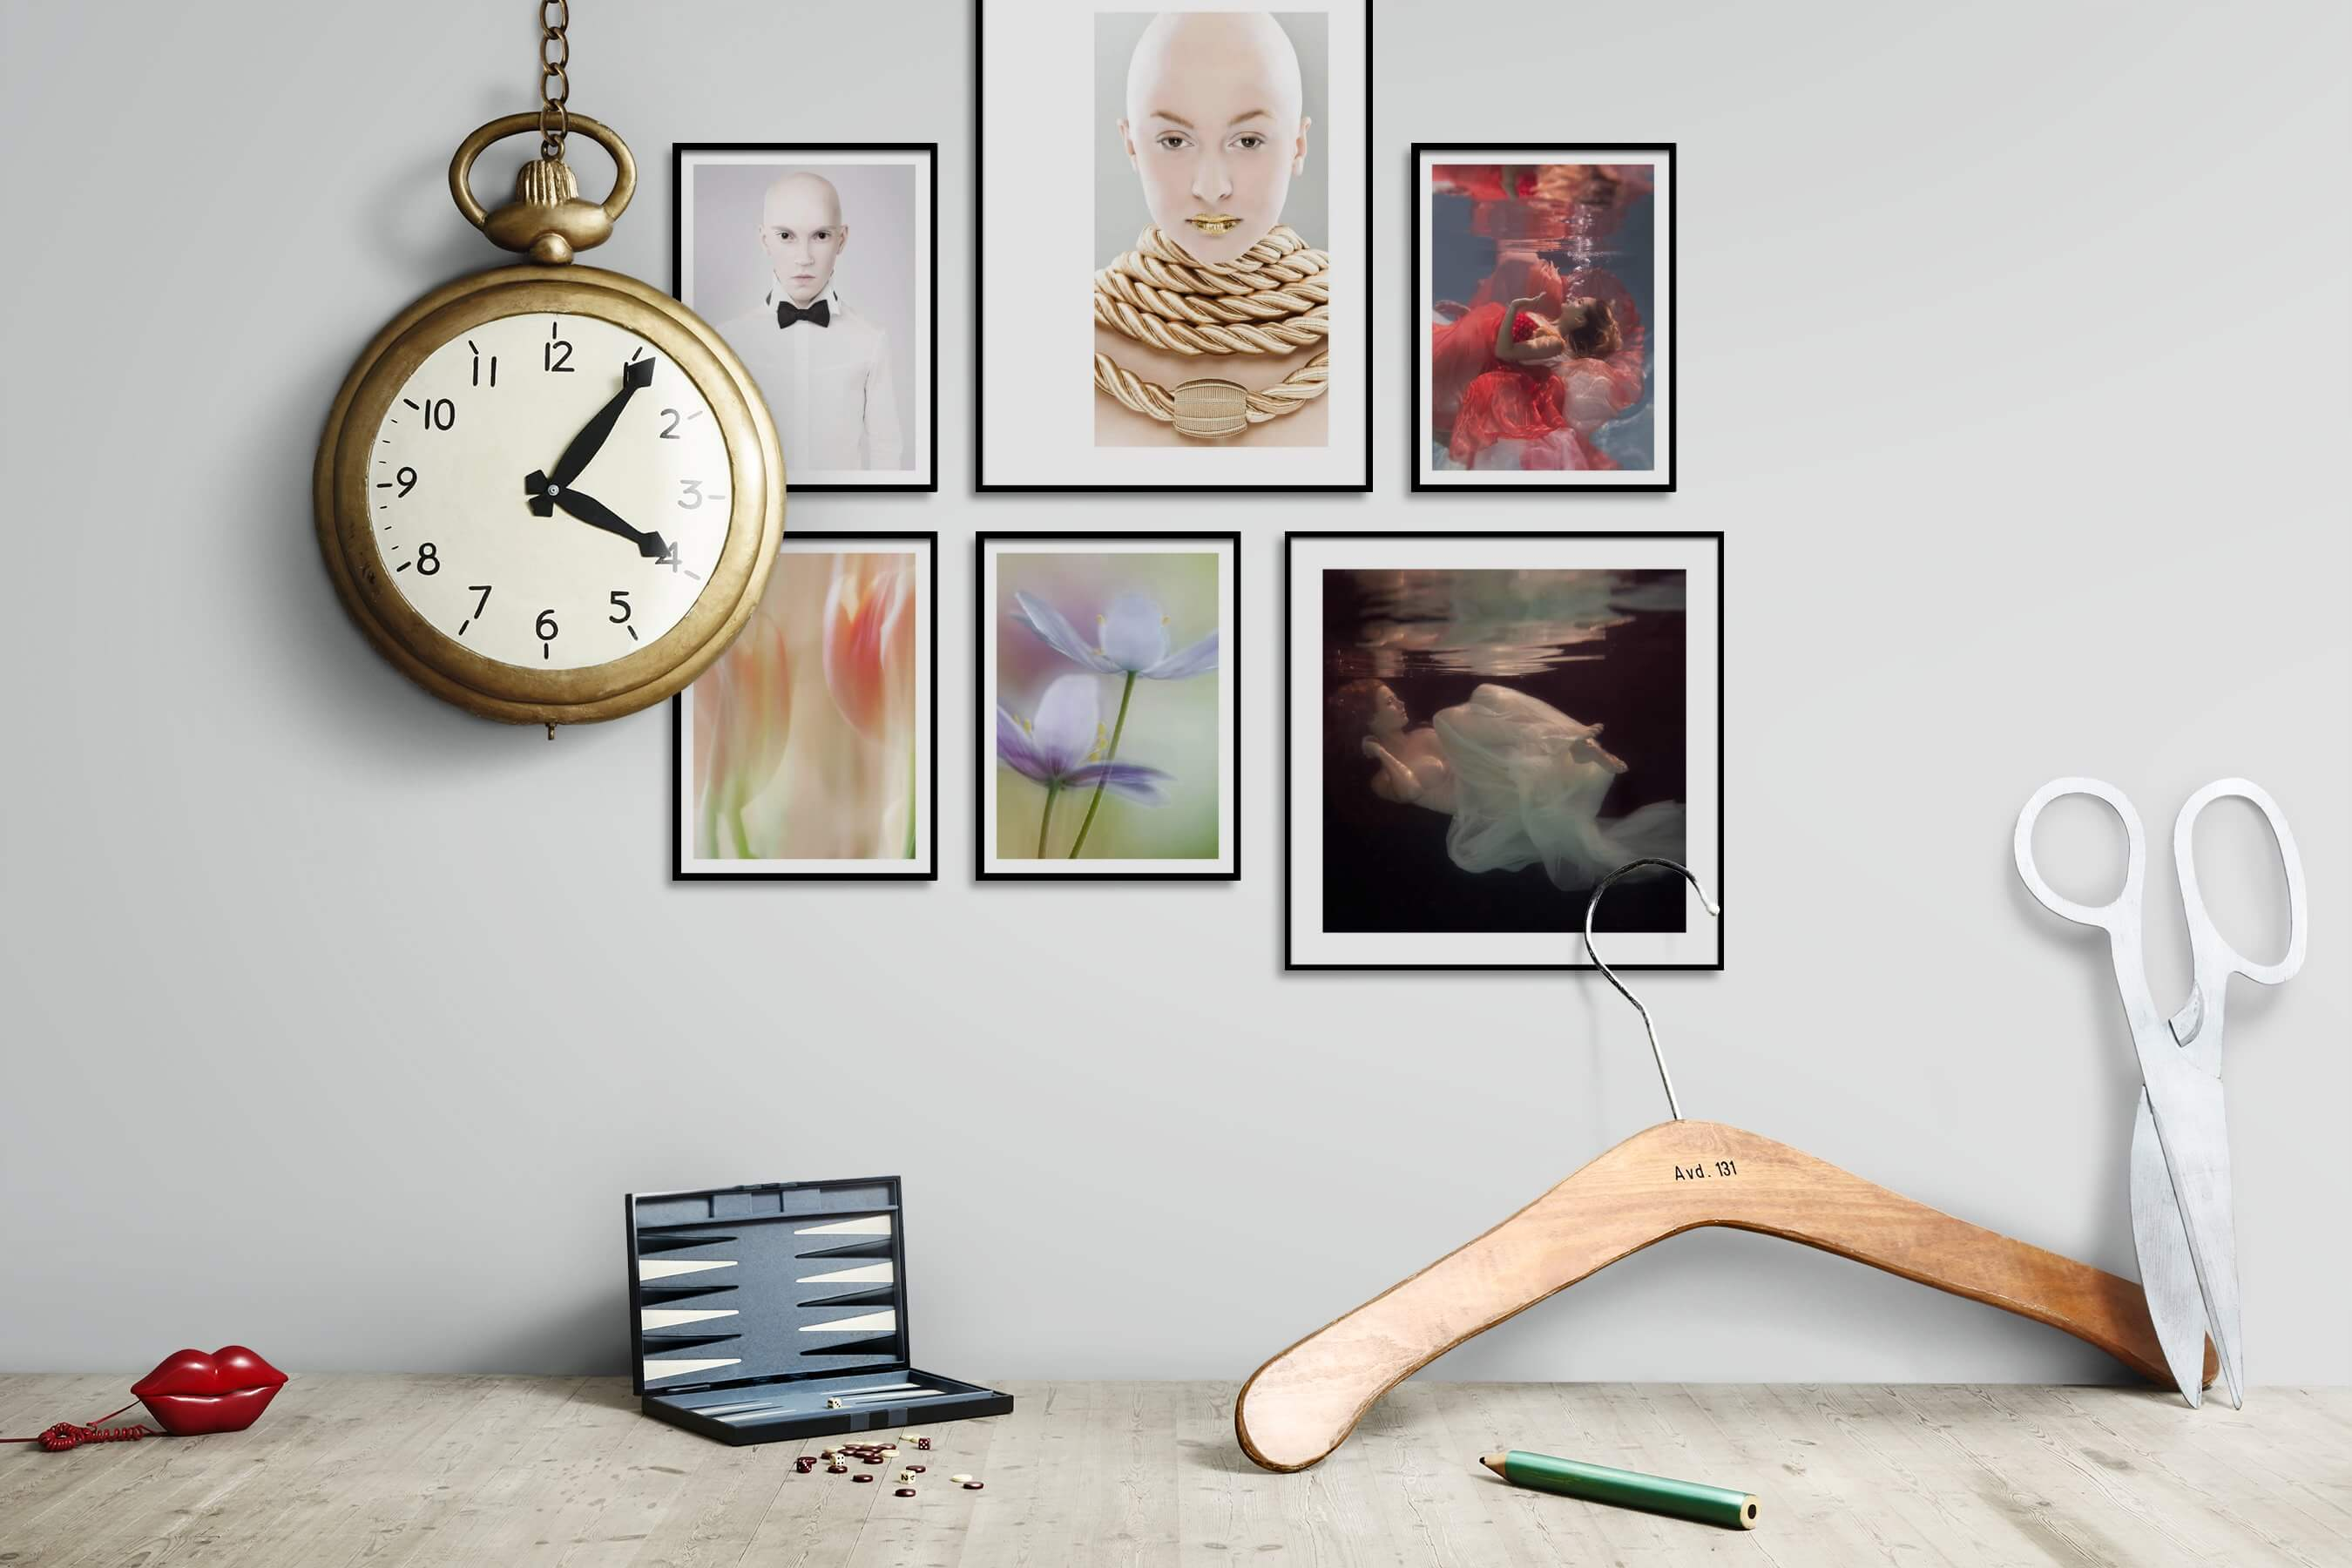 Gallery wall idea with six framed pictures arranged on a wall depicting Fashion & Beauty, For the Moderate, Flowers & Plants, and Beach & Water